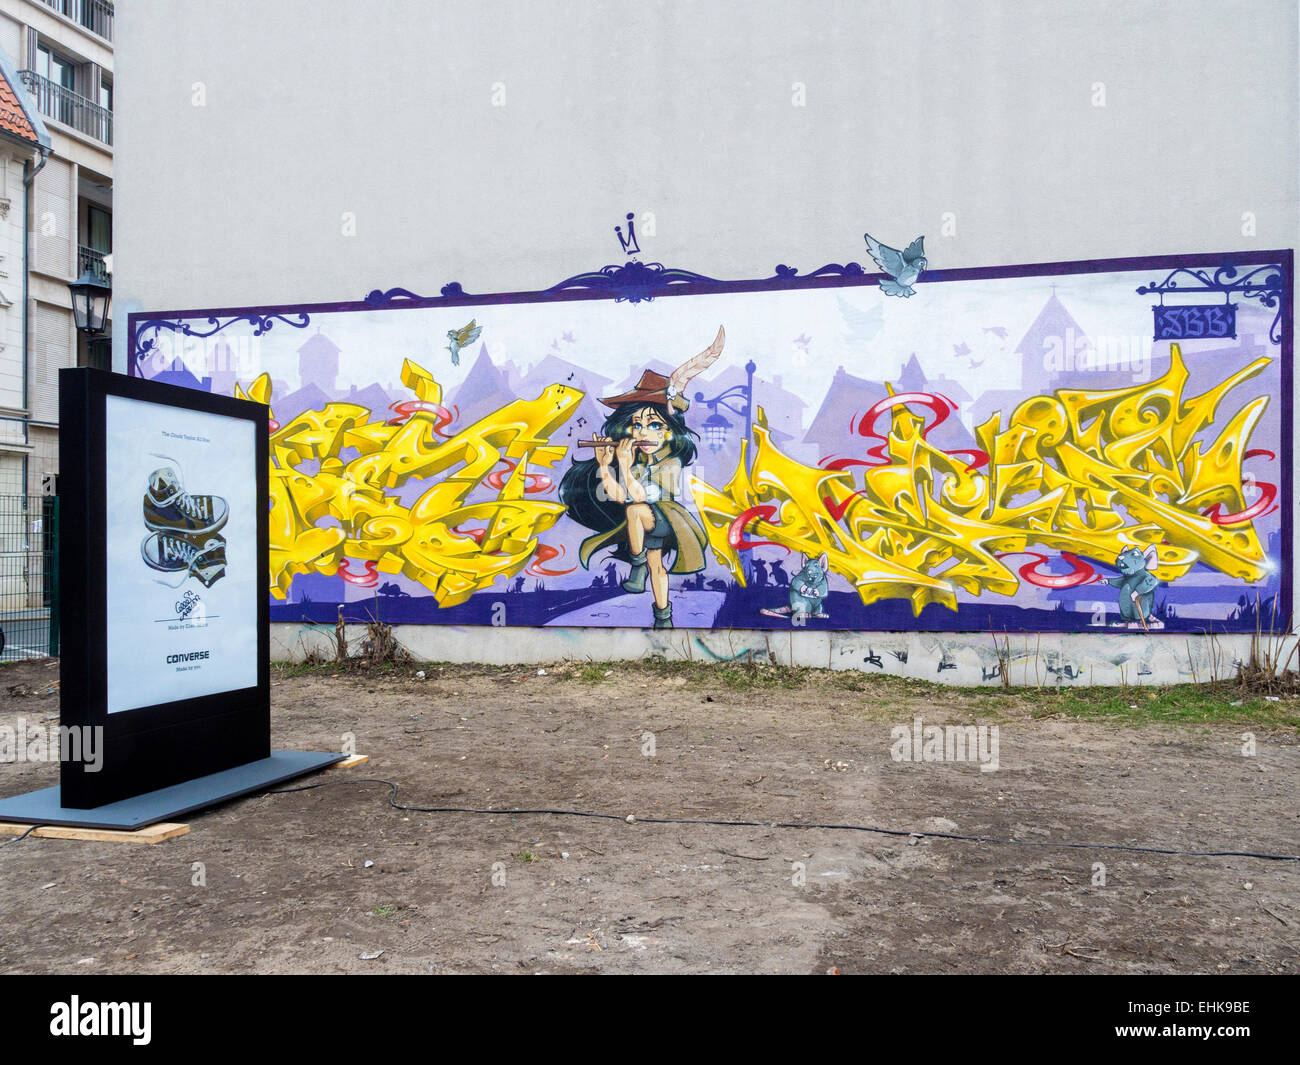 ccbcf537d9f1 Berlin  Pied Piper of Hamelin  street art mural and Converse Trainers  Advertisement